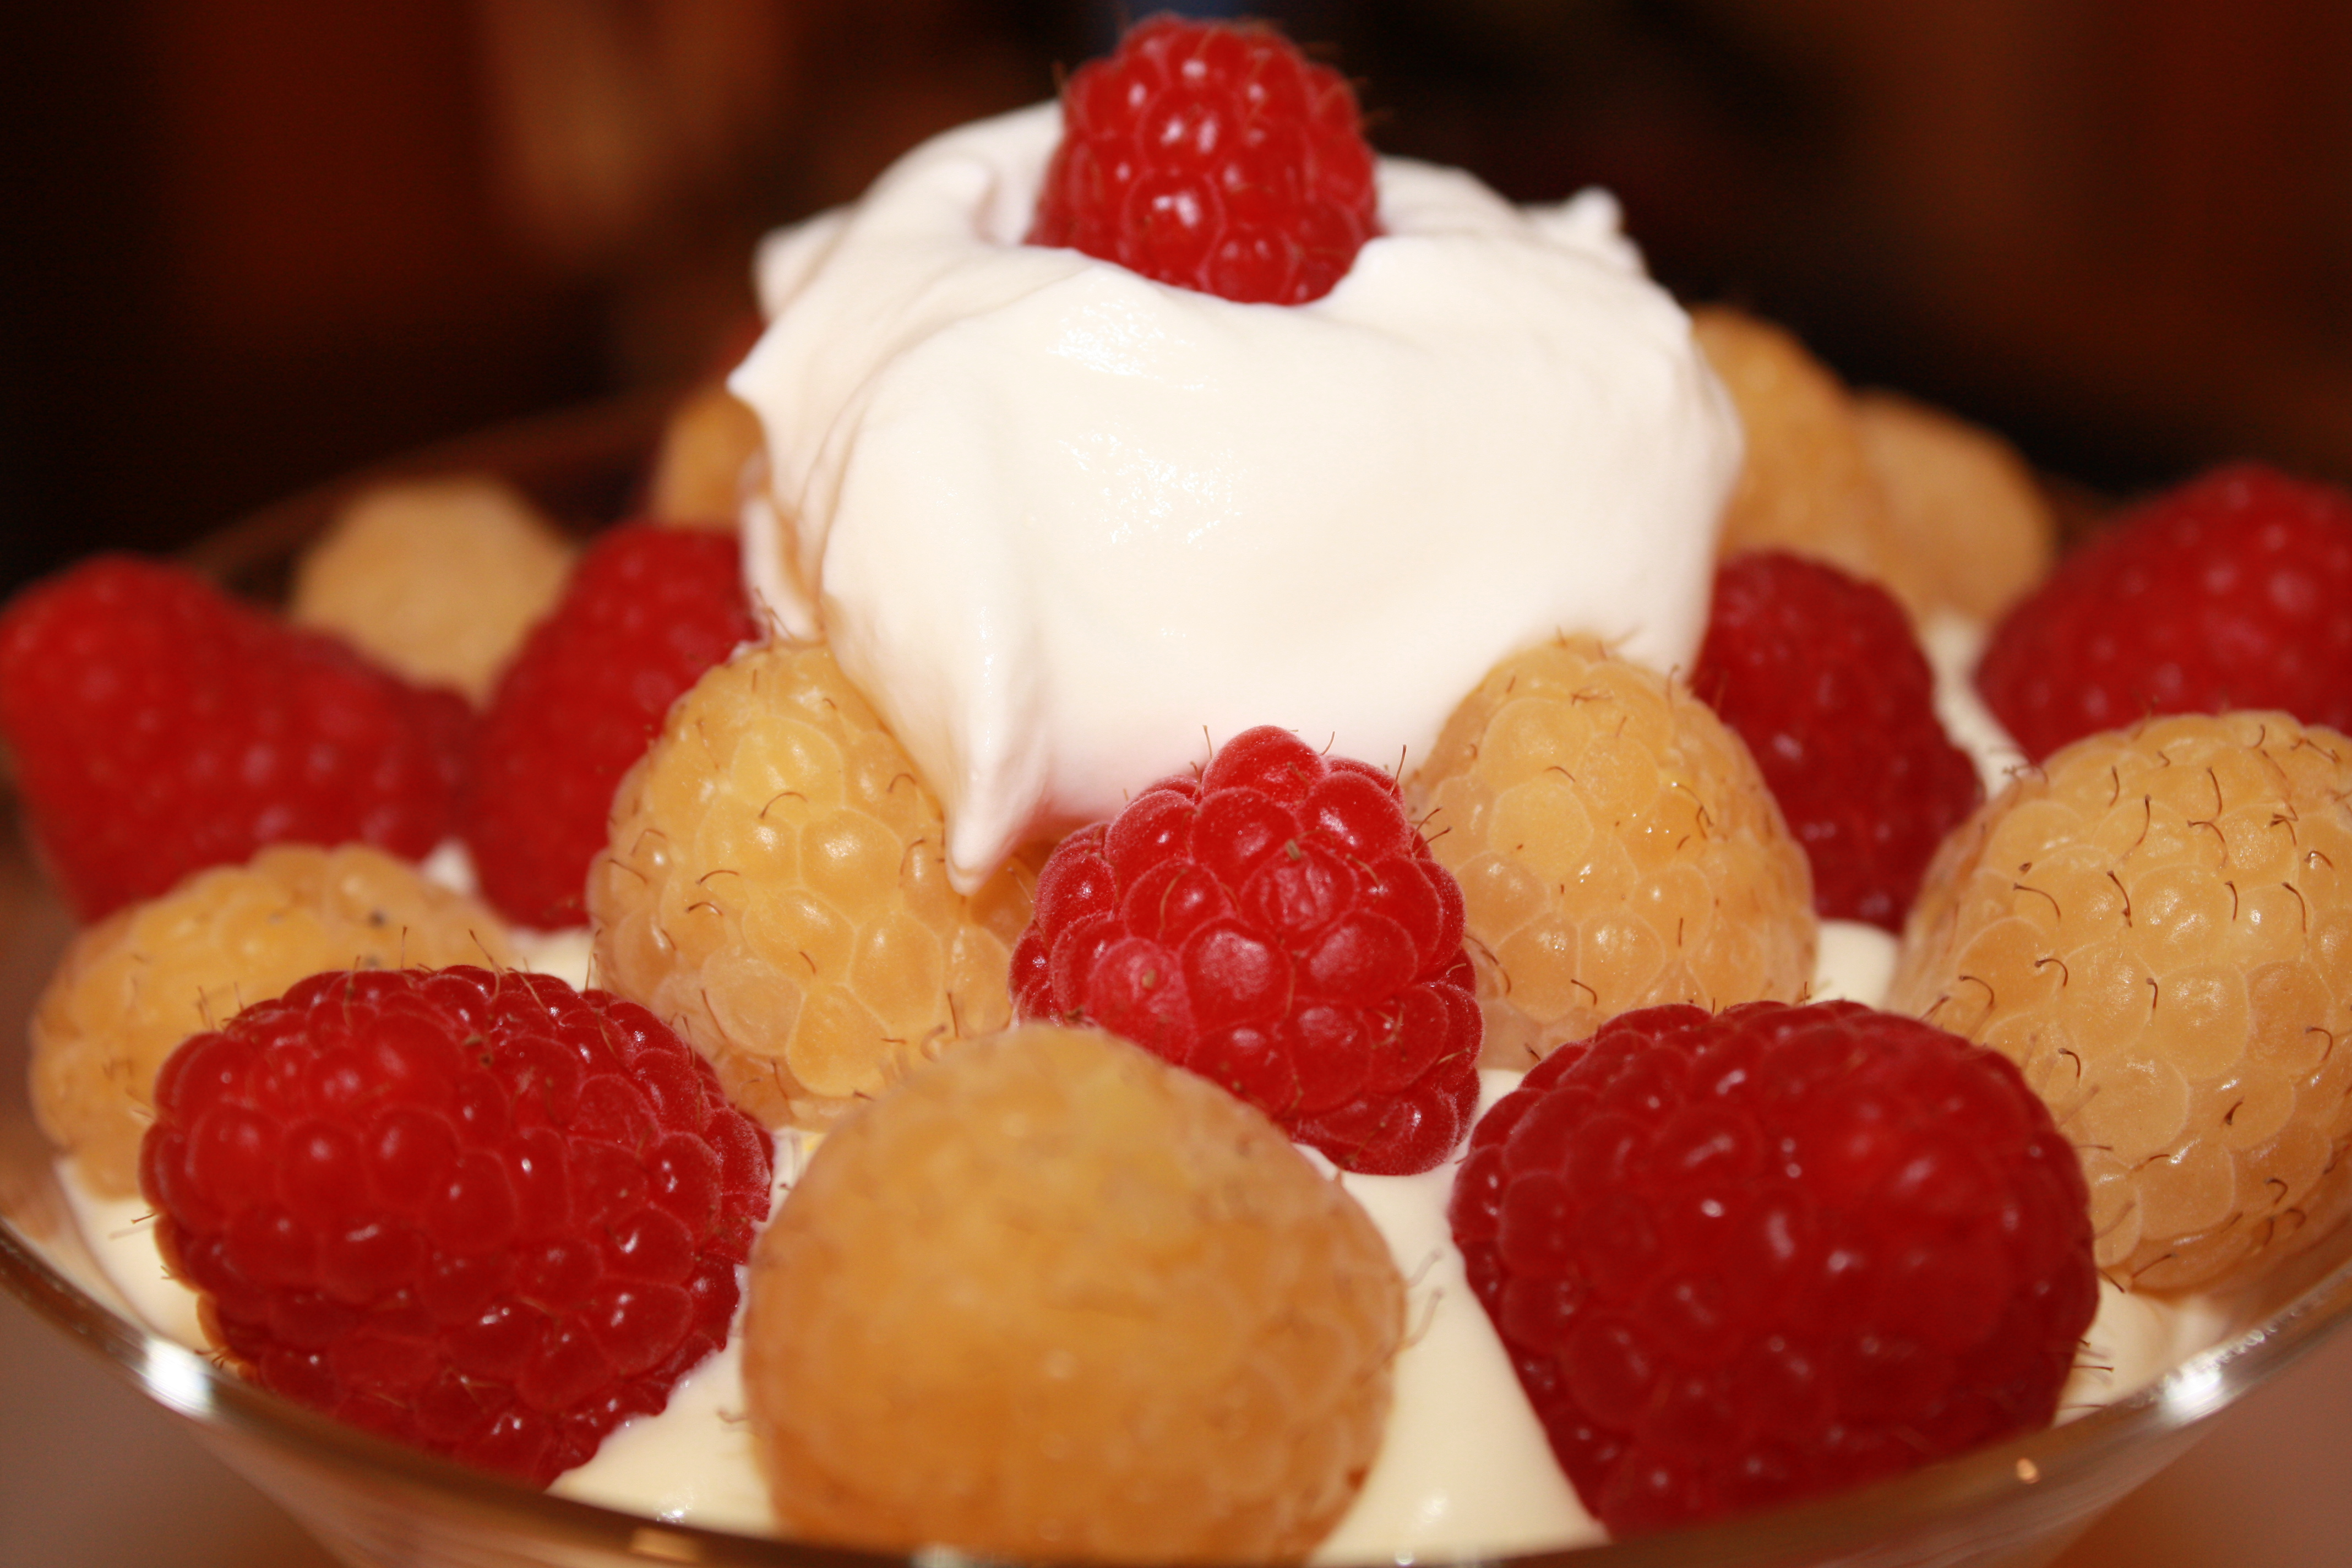 Meyer Lemon Mousse with Raspberries